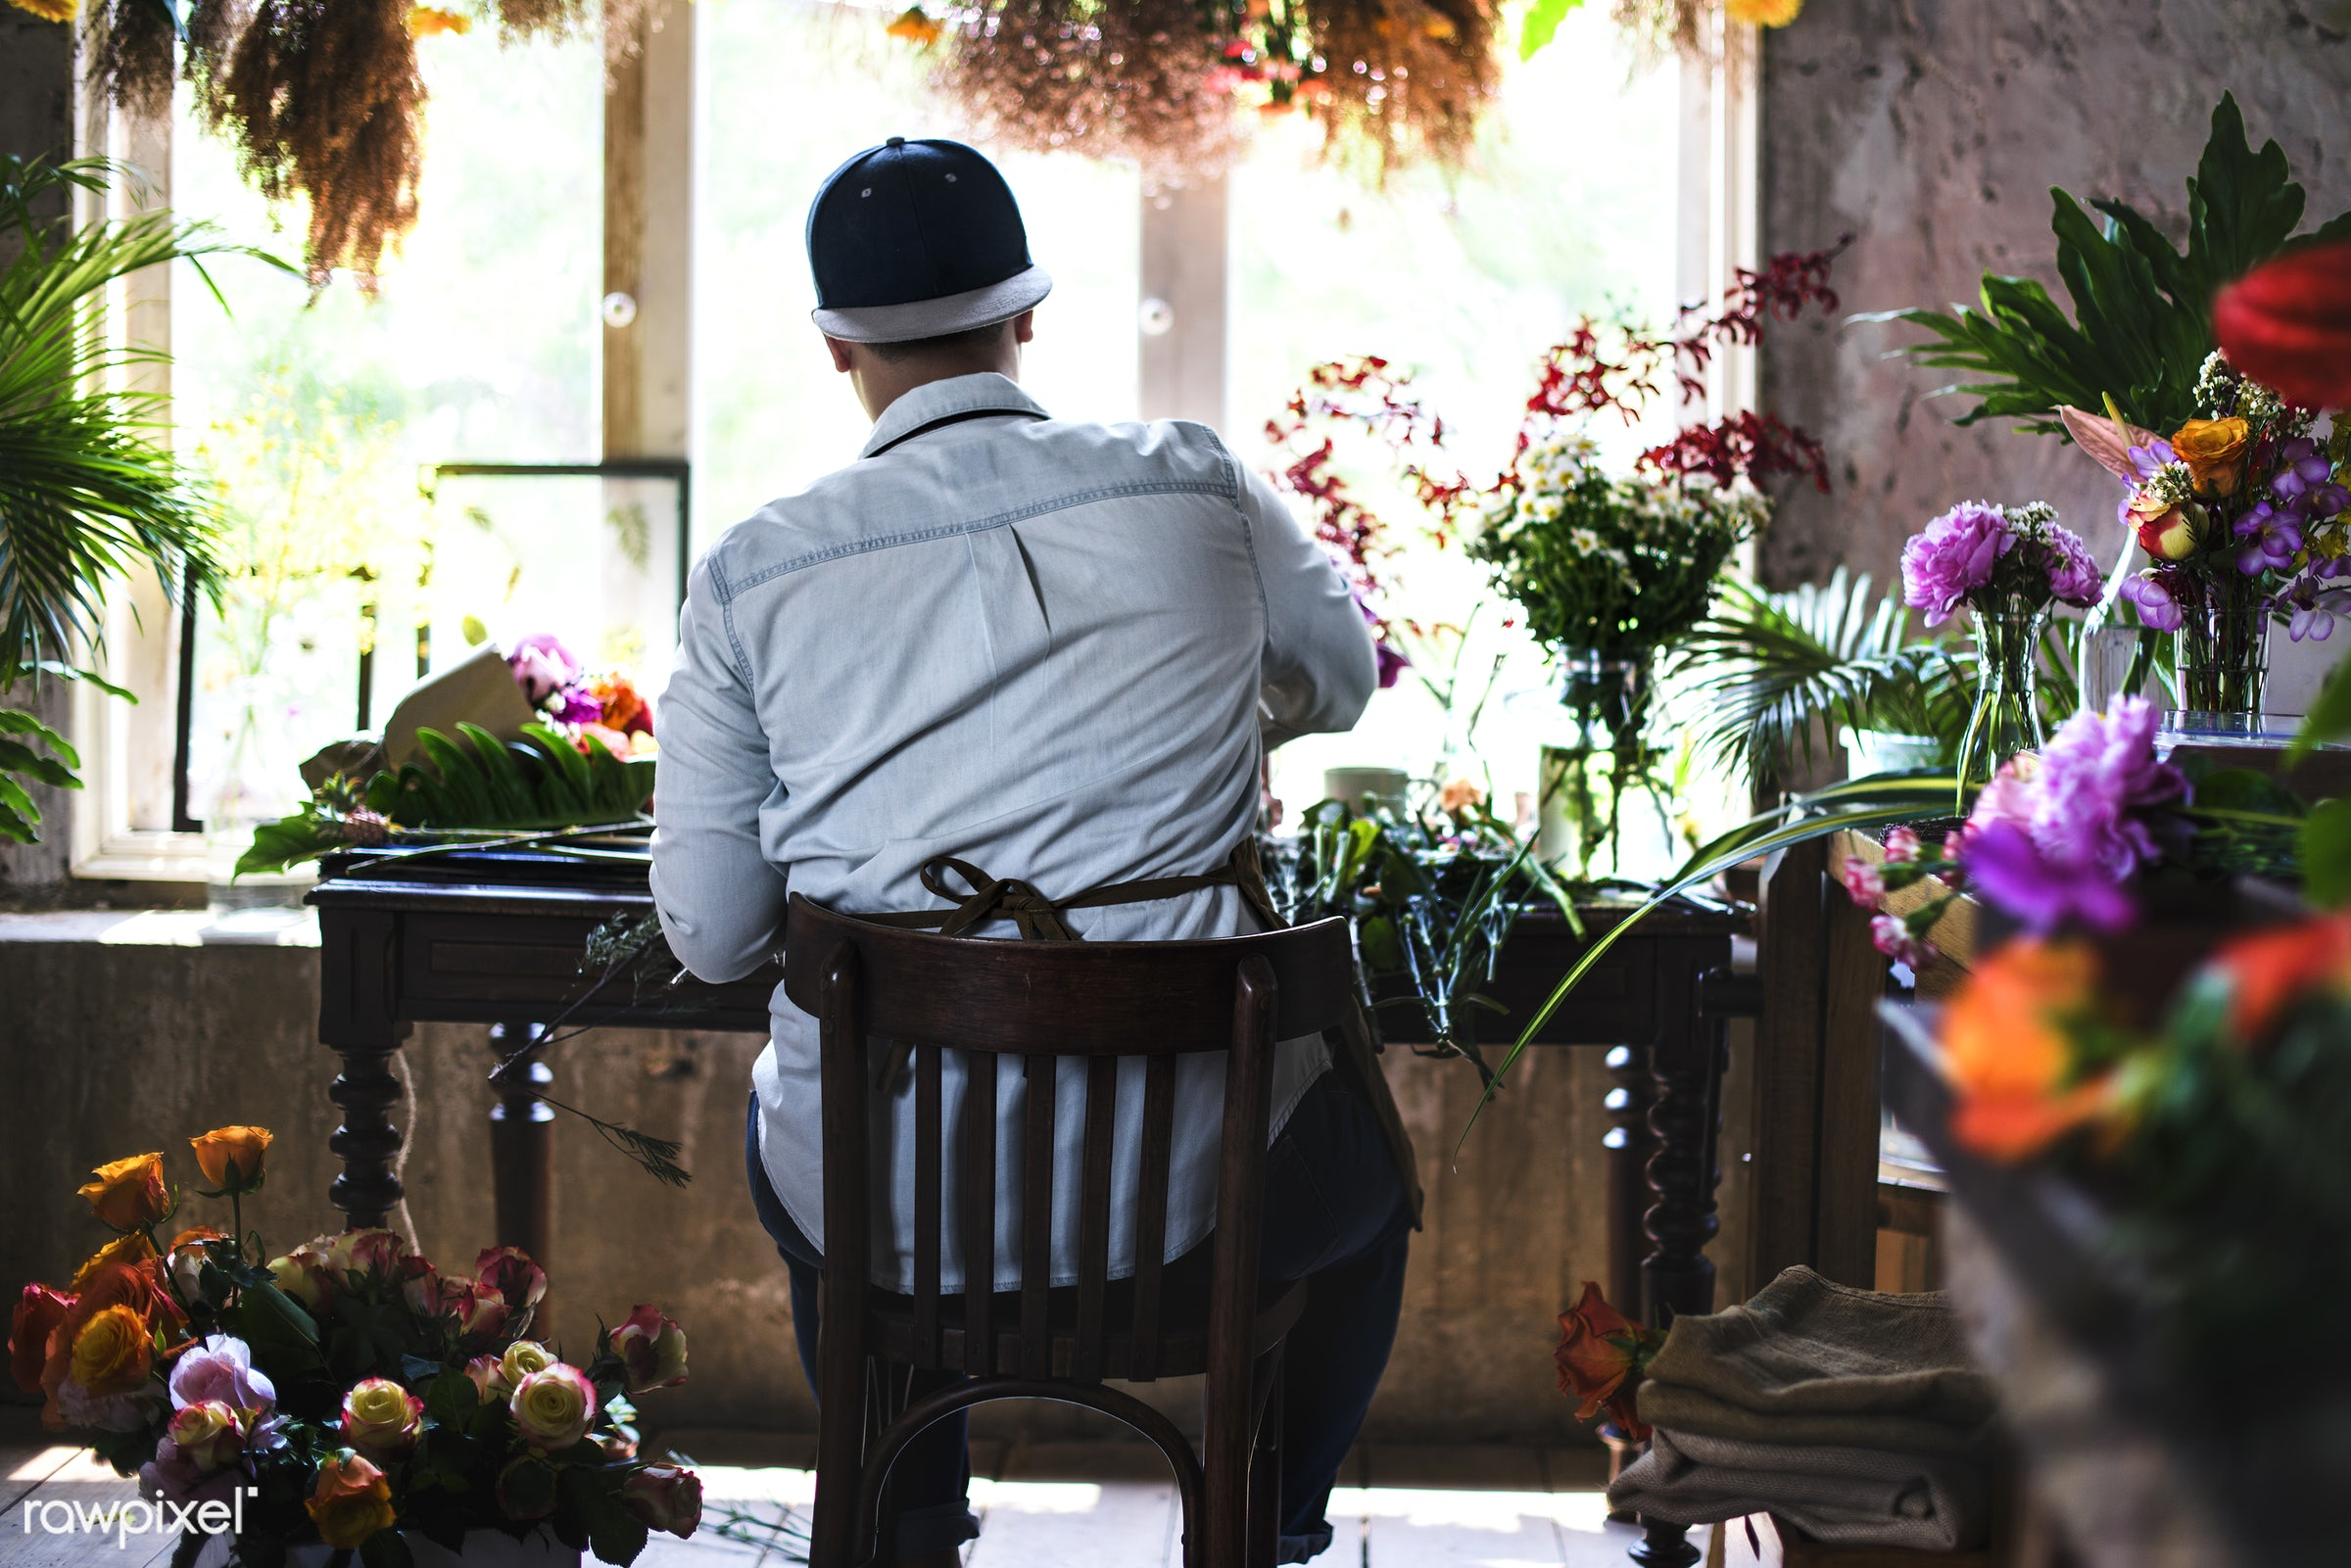 plant, bouquet, person, fresh, flower, man, rear view, flora, decoration, refreshment, leisure, table, florist, flower shop...